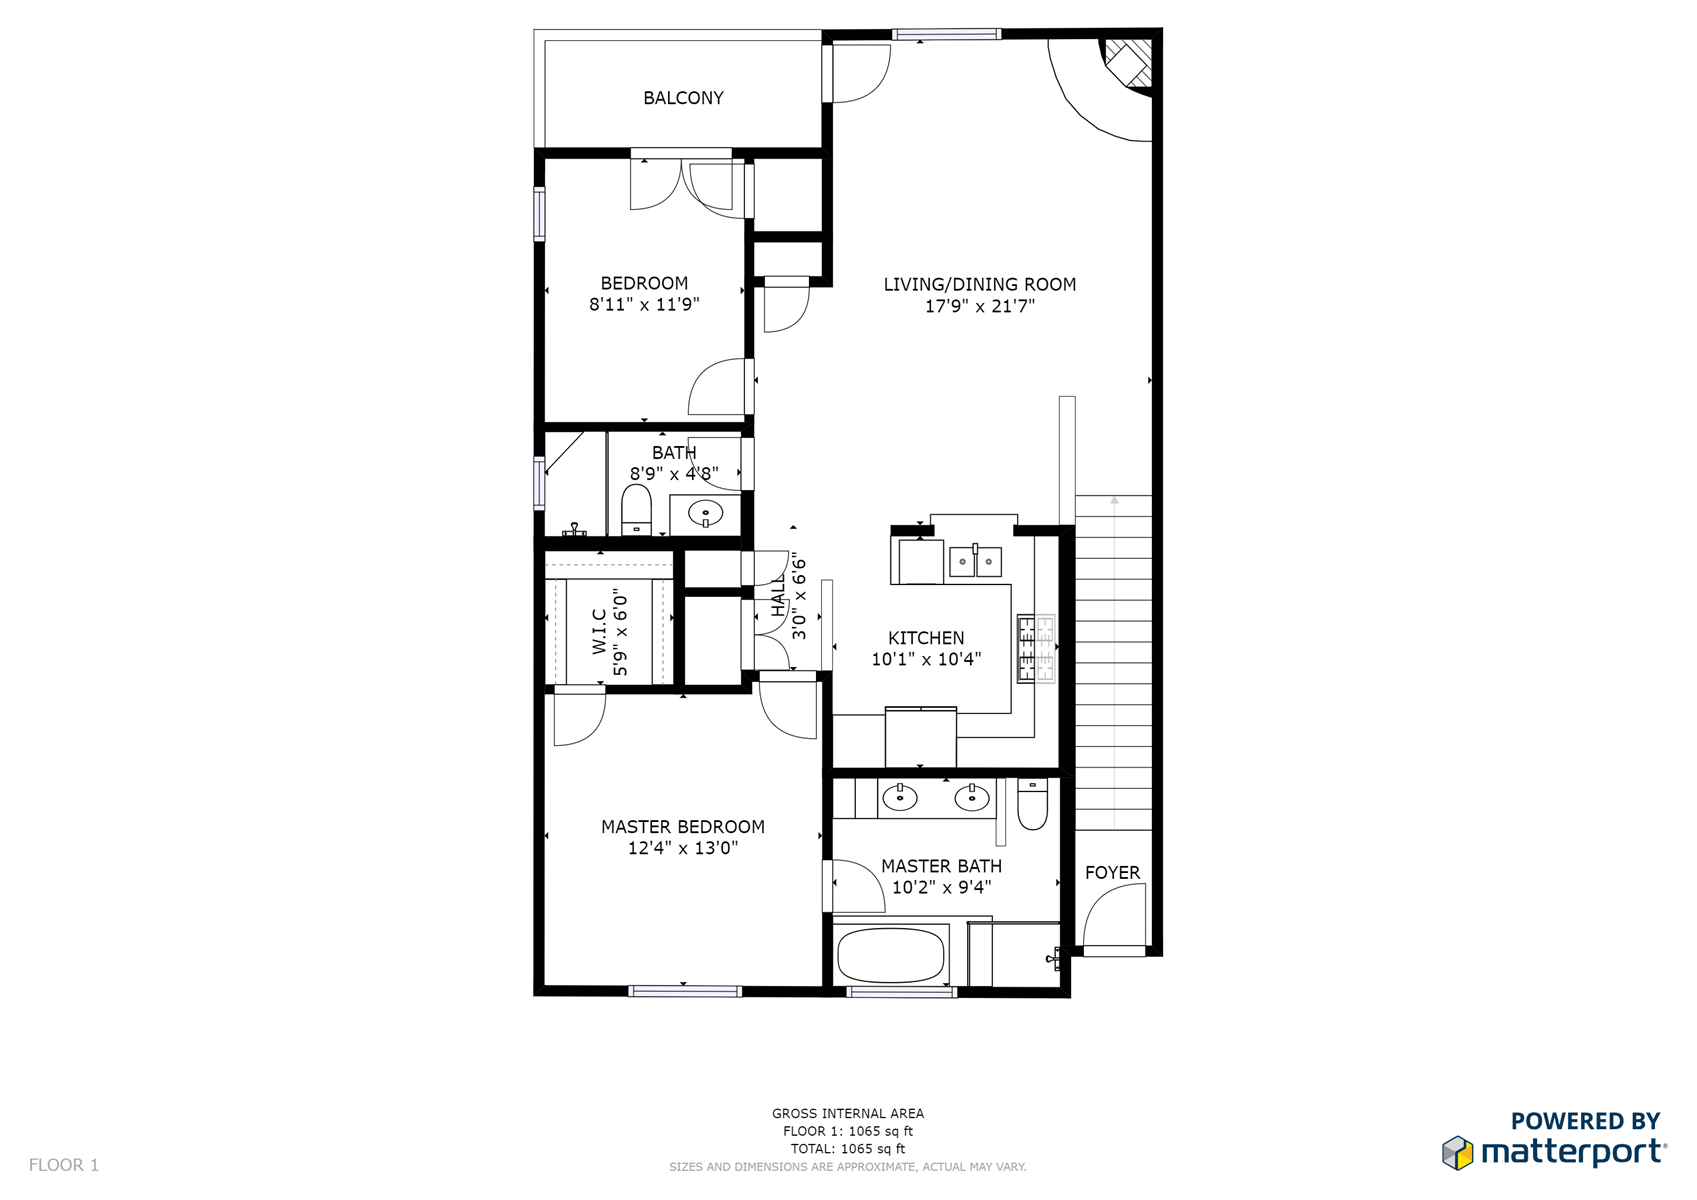 Floor Plan for Corazon Condo Unit 2, 2 Bed / 2 Bath, Luxury Style Condo